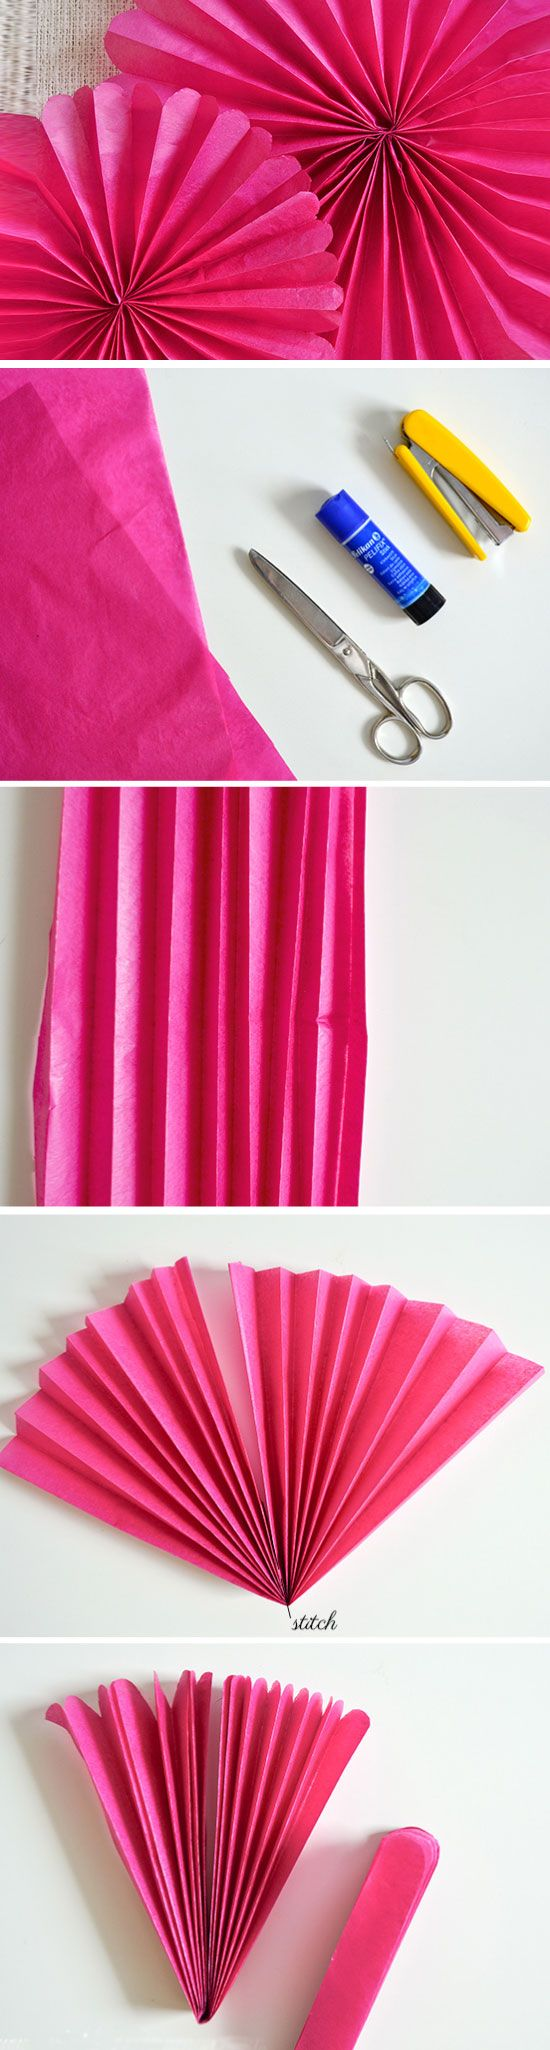 Tissue paper christmas decorations diy - 22 Diy Bridal Shower Party Ideas On A Budget